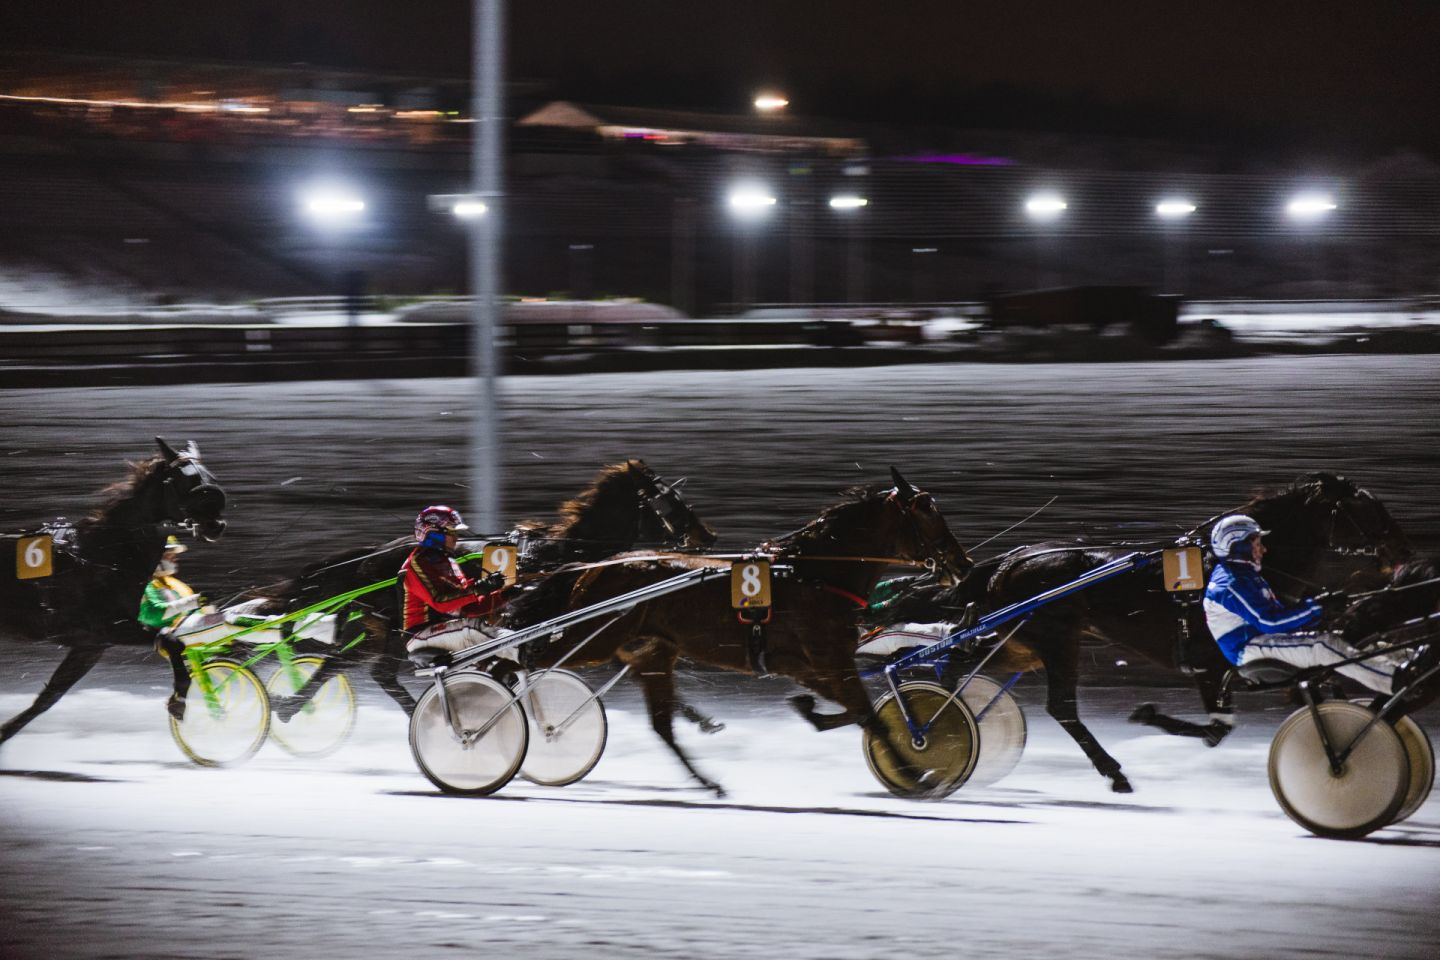 Arctic horse race in the town of Rovaniemi, Finland